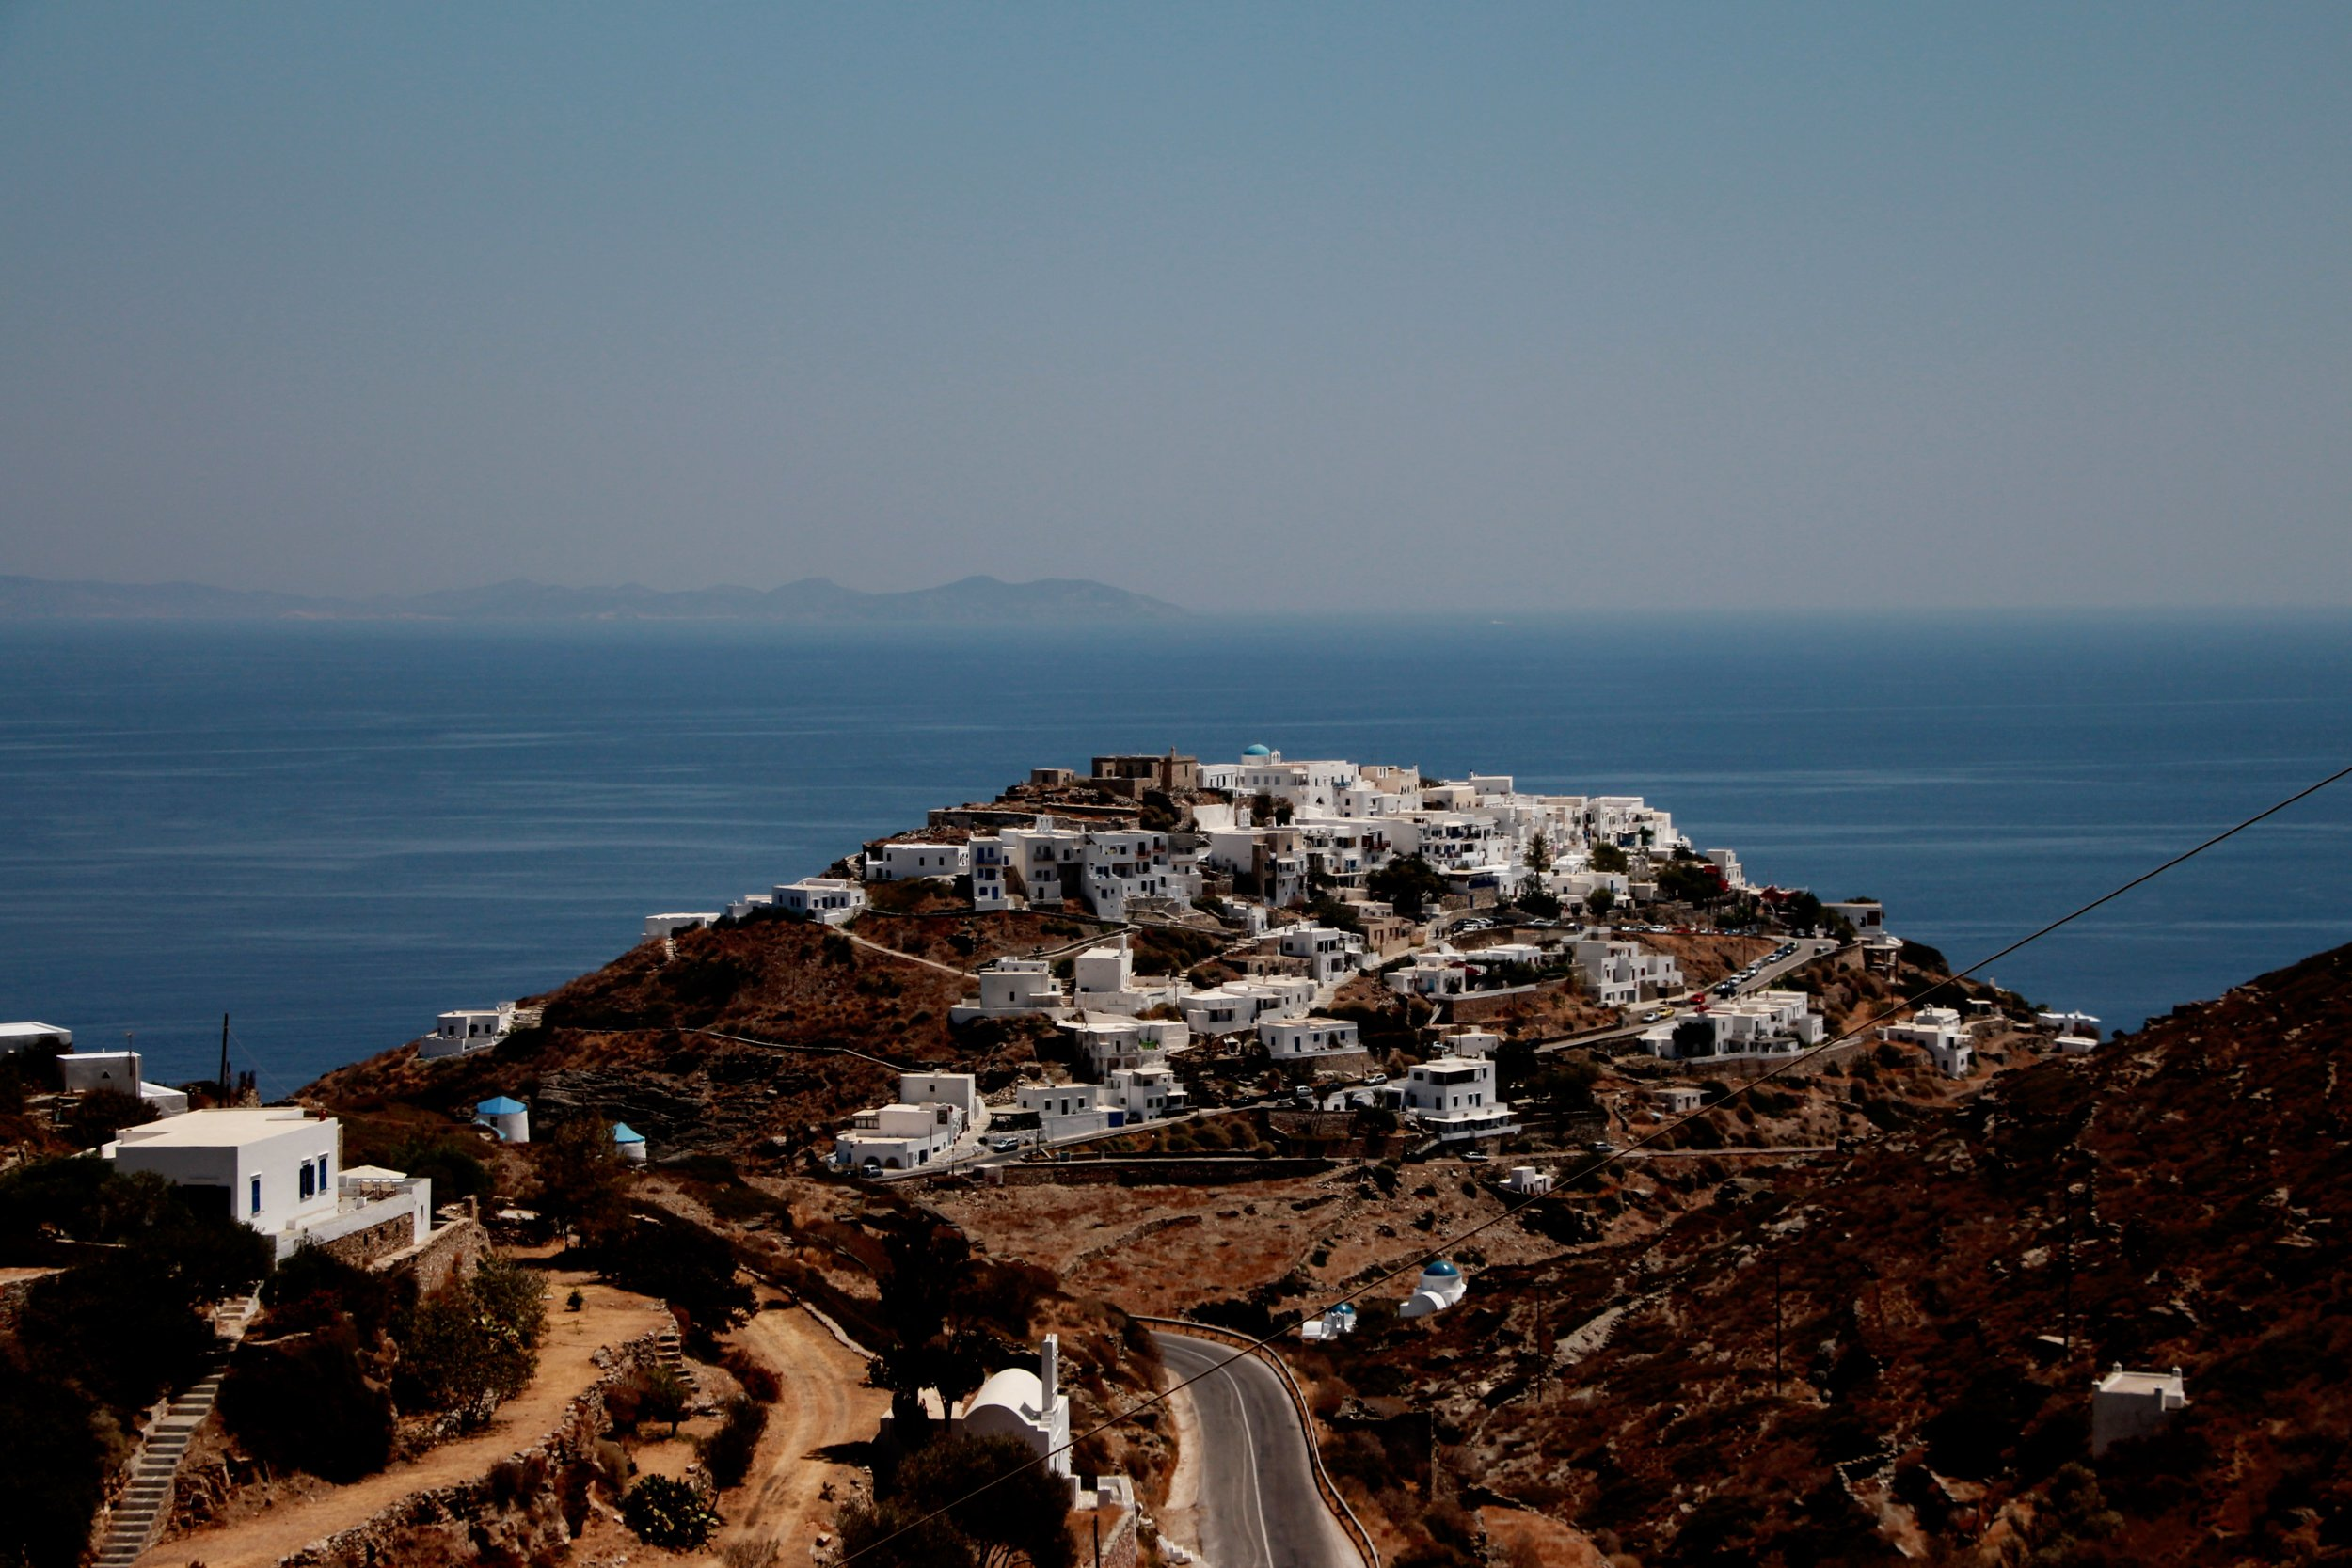 The view from Kastro to Antiparos is stunning